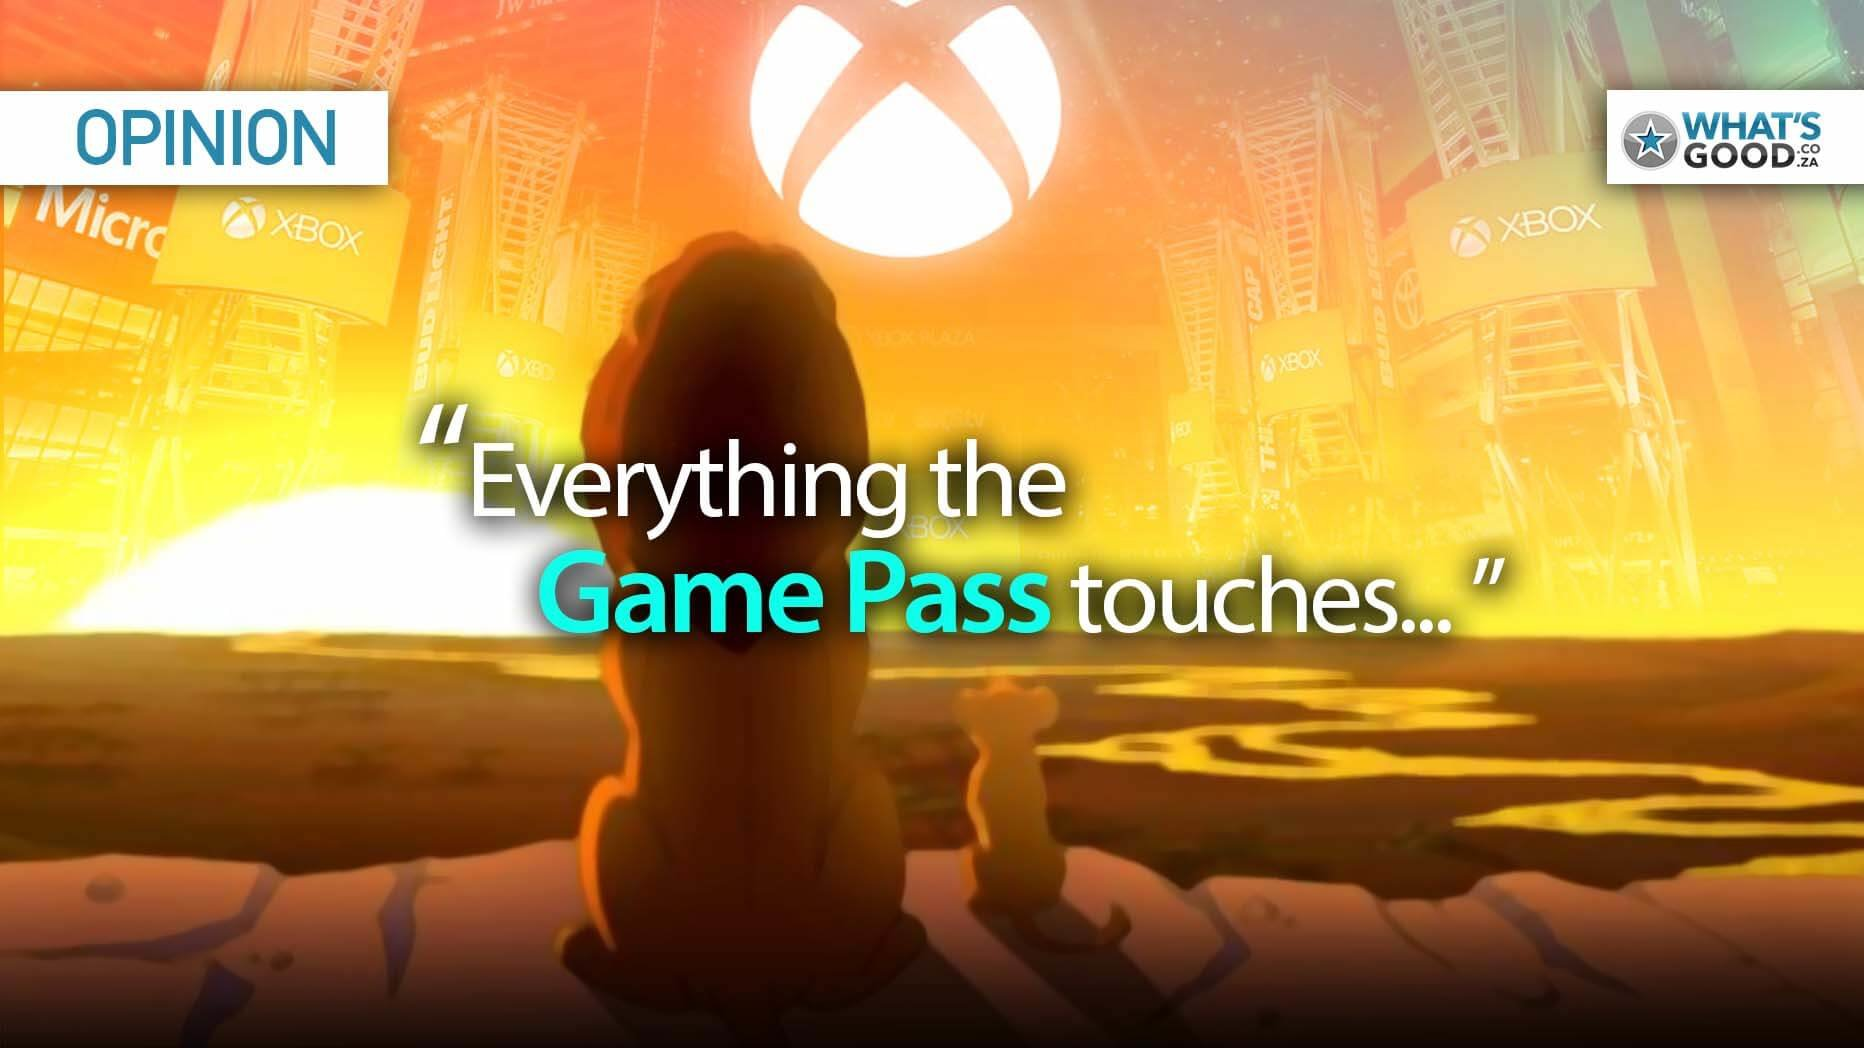 This Year's Xbox E3 Event Is More Exciting Than All Others – Here's Why